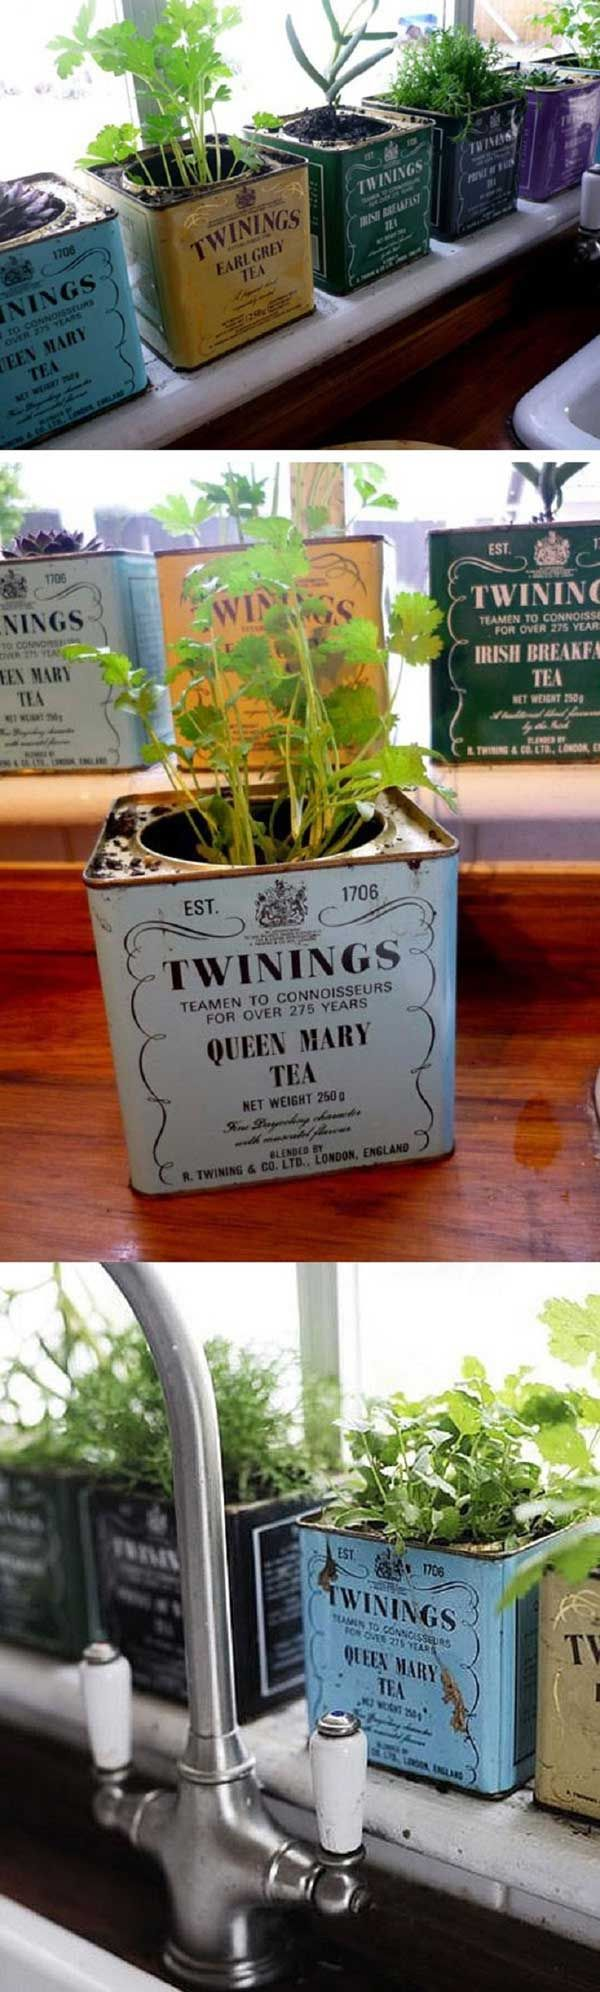 Old Twinings Tea Caddies Can be Used as Planters for Basil, Curly Parsley or Chamomile